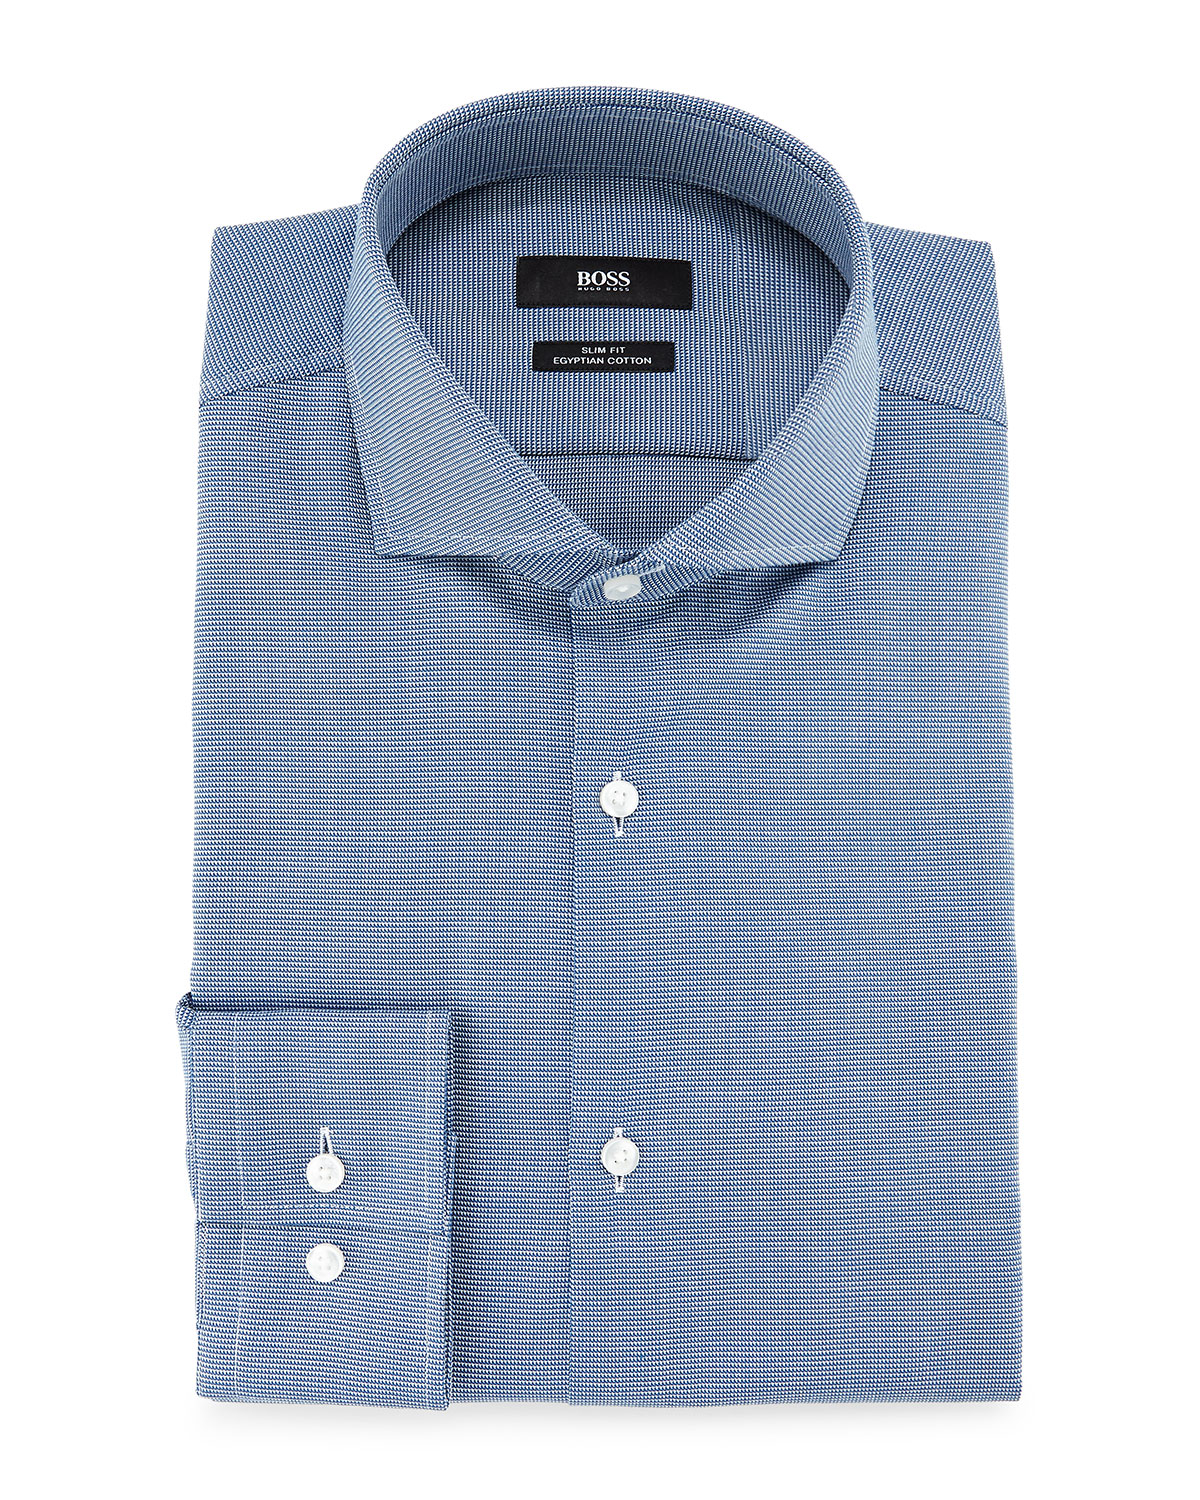 lyst boss jason slim fit textured pindot dress shirt in blue for men. Black Bedroom Furniture Sets. Home Design Ideas